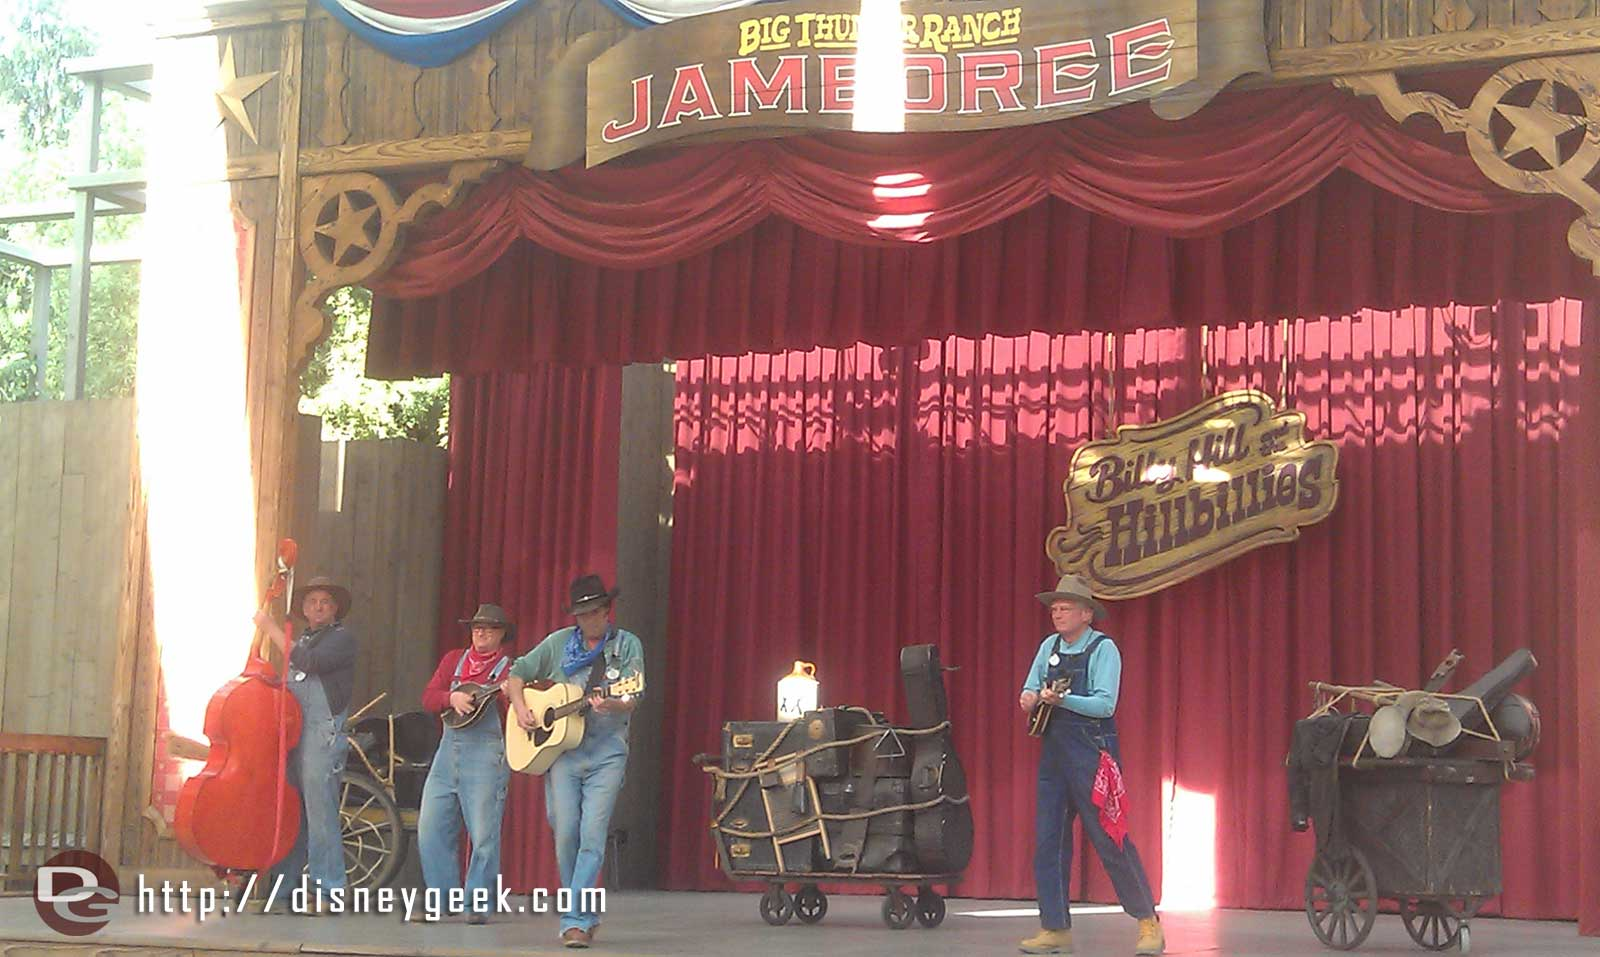 Stopped by the Big Thunder Ranch Jamboree to catch the Billies